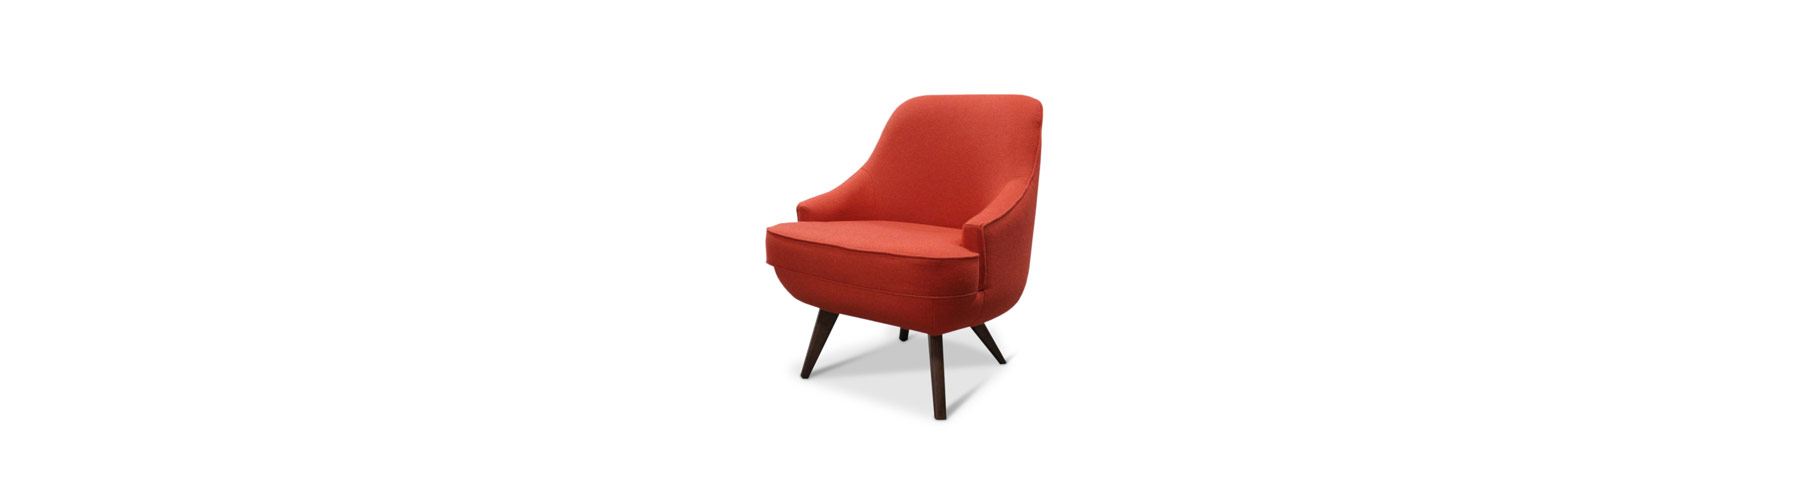 Maely - Fauteuil William